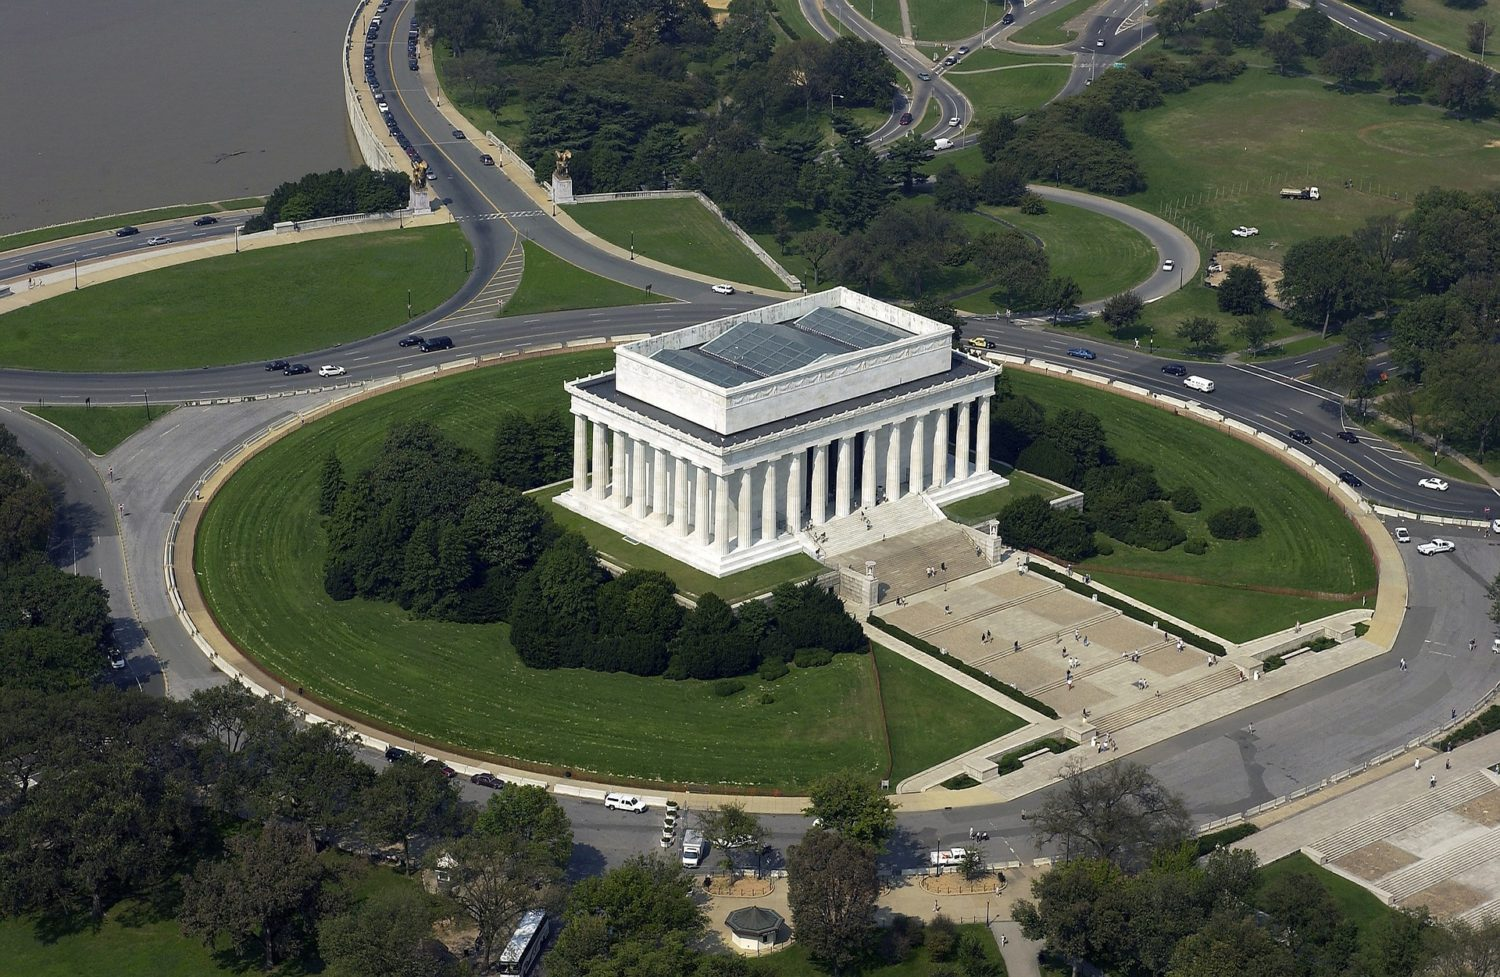 Aerial view of Lincoln Memorial, Washington, D.C.